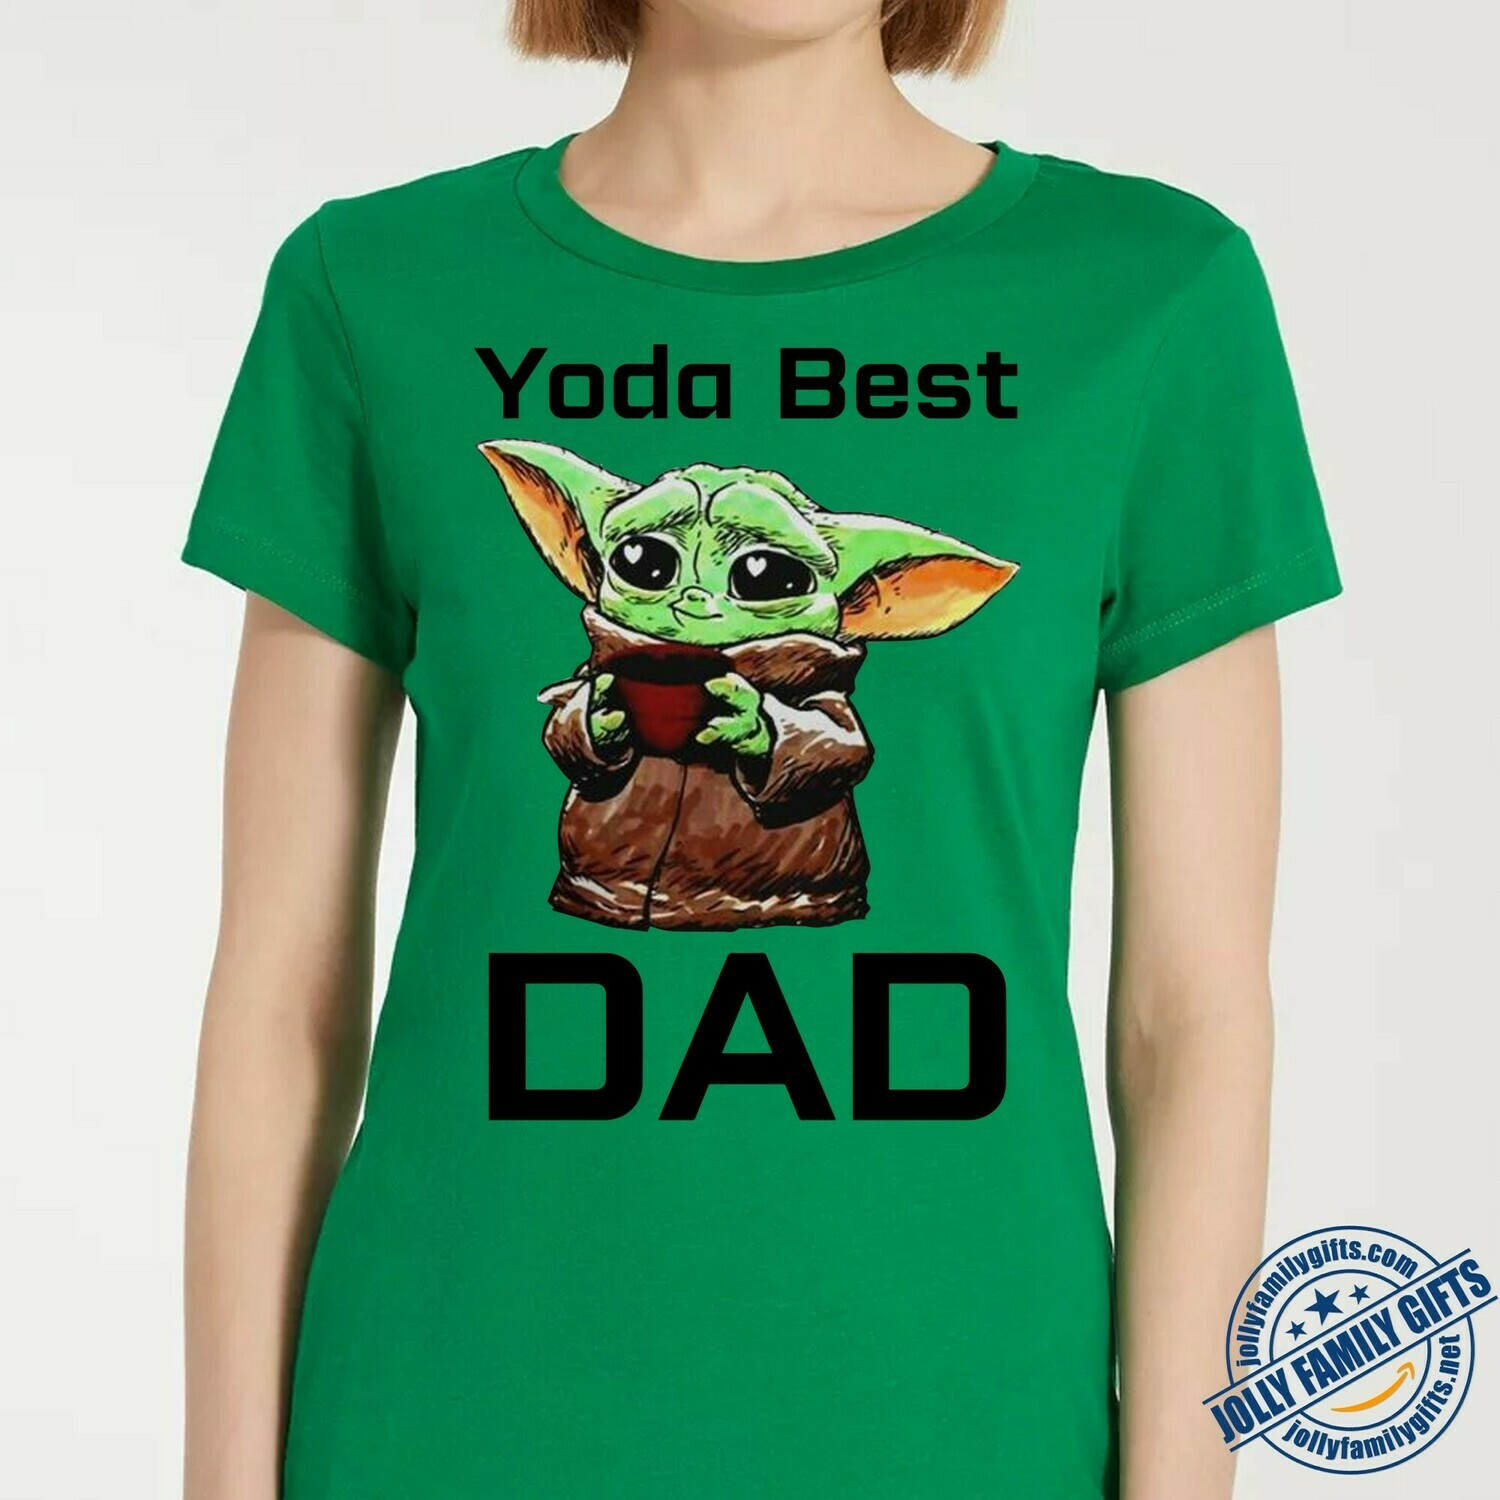 Baby Yoda The Mandalorian with death Star Wars Movie Yoda best Dad,Yoda Hug Mug Gift for him dady father T-Shirt Hoodie Sweatshirt Sweater Tee Kids Youth Gifts Jolly Family Gifts